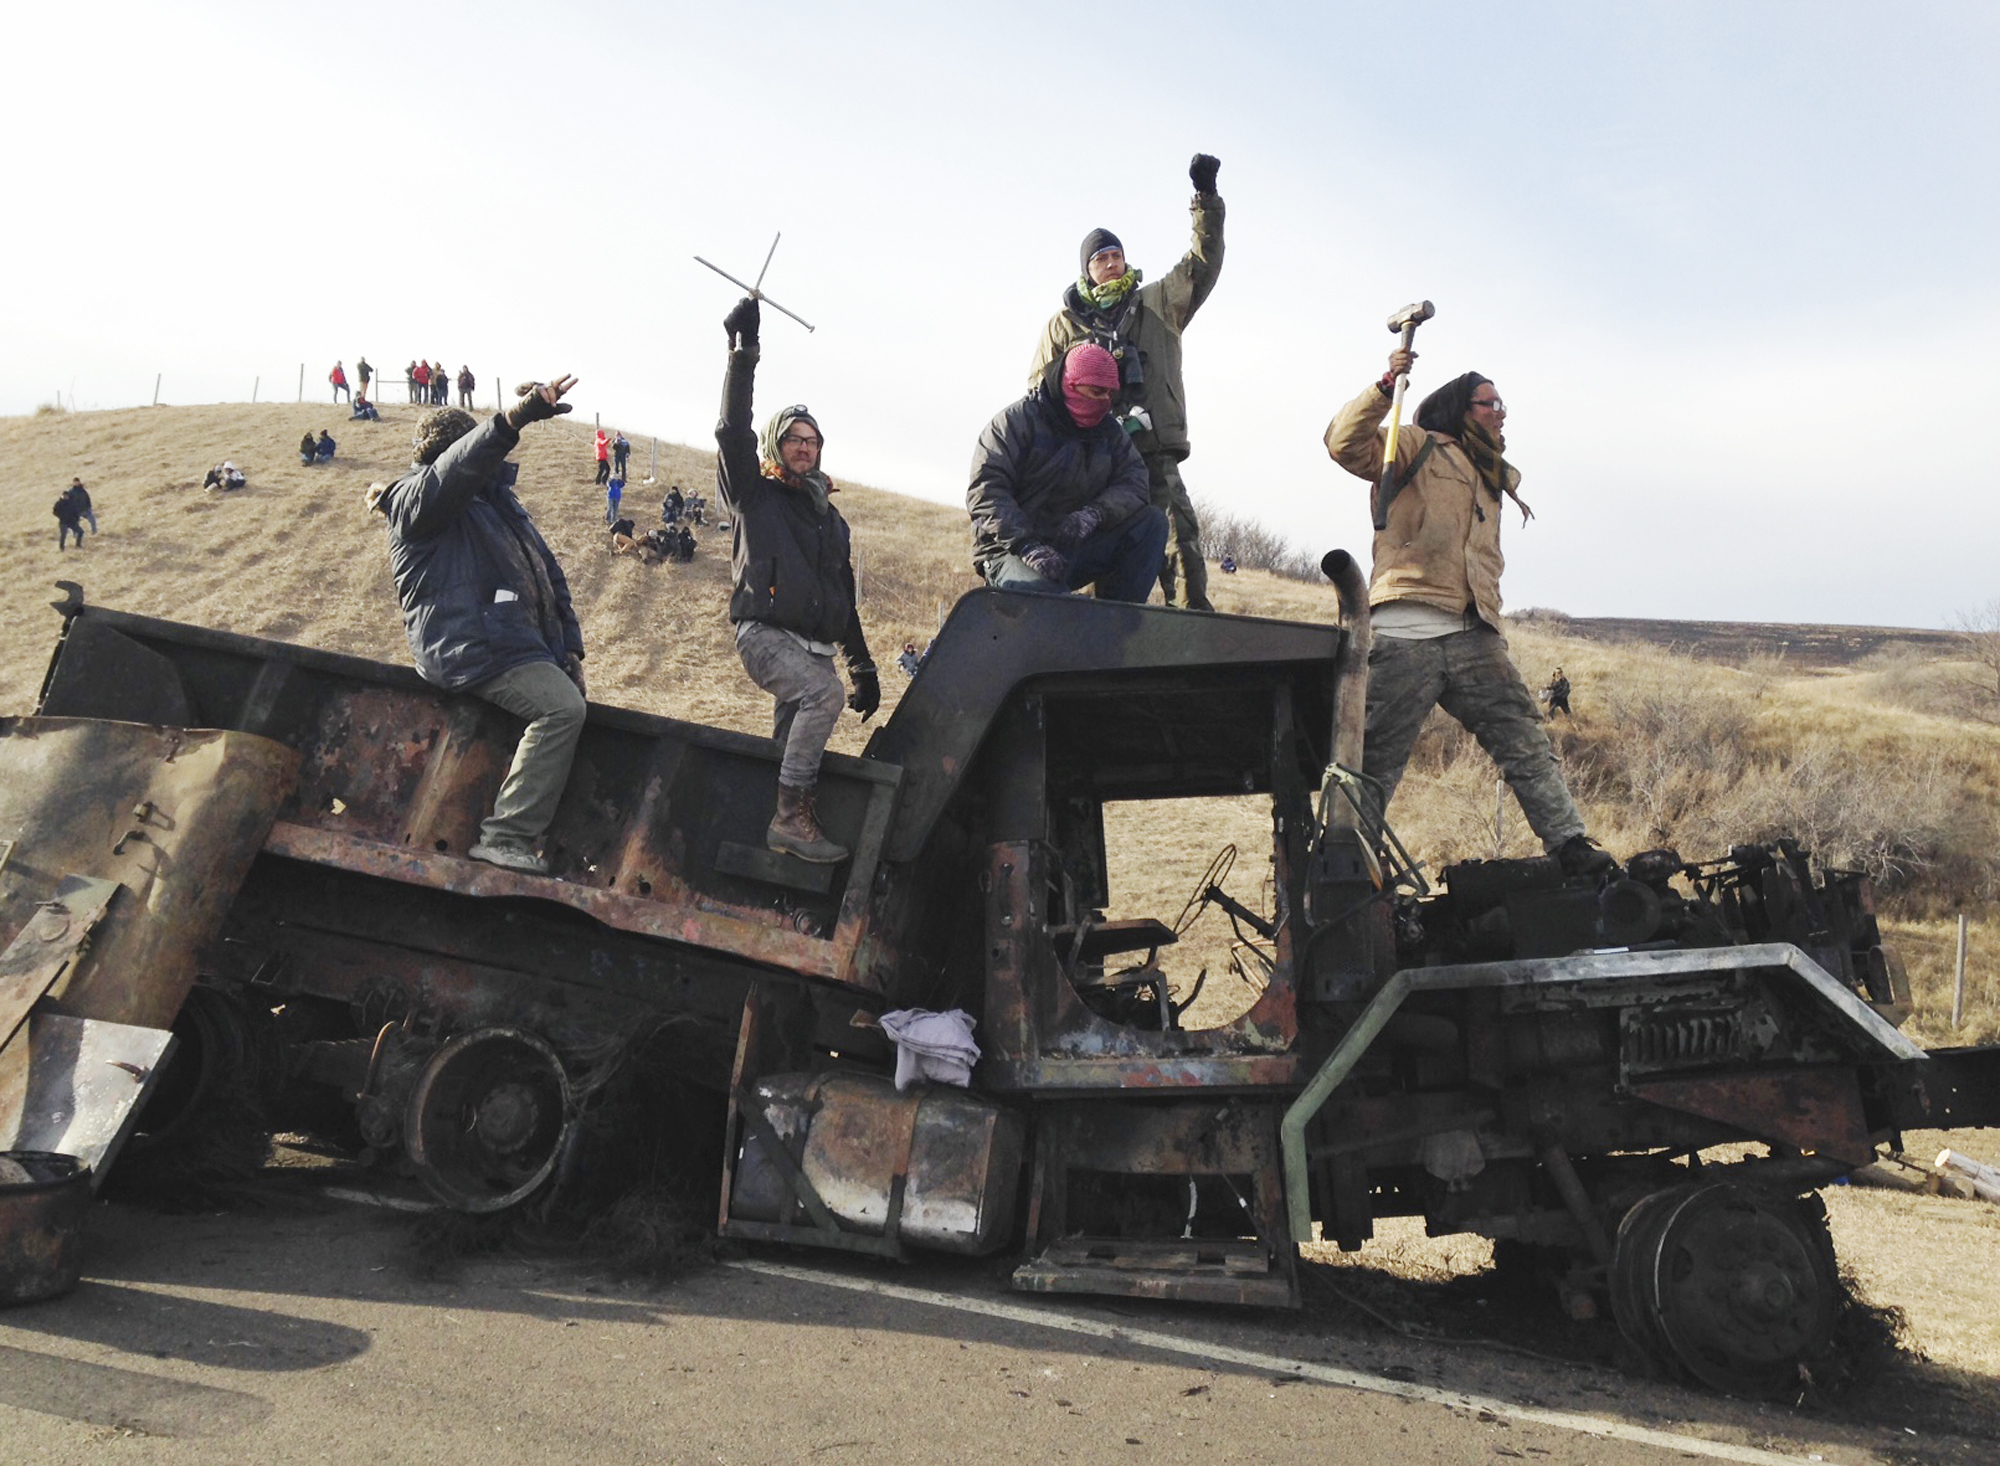 Supply deliveries to protest camp could be fined